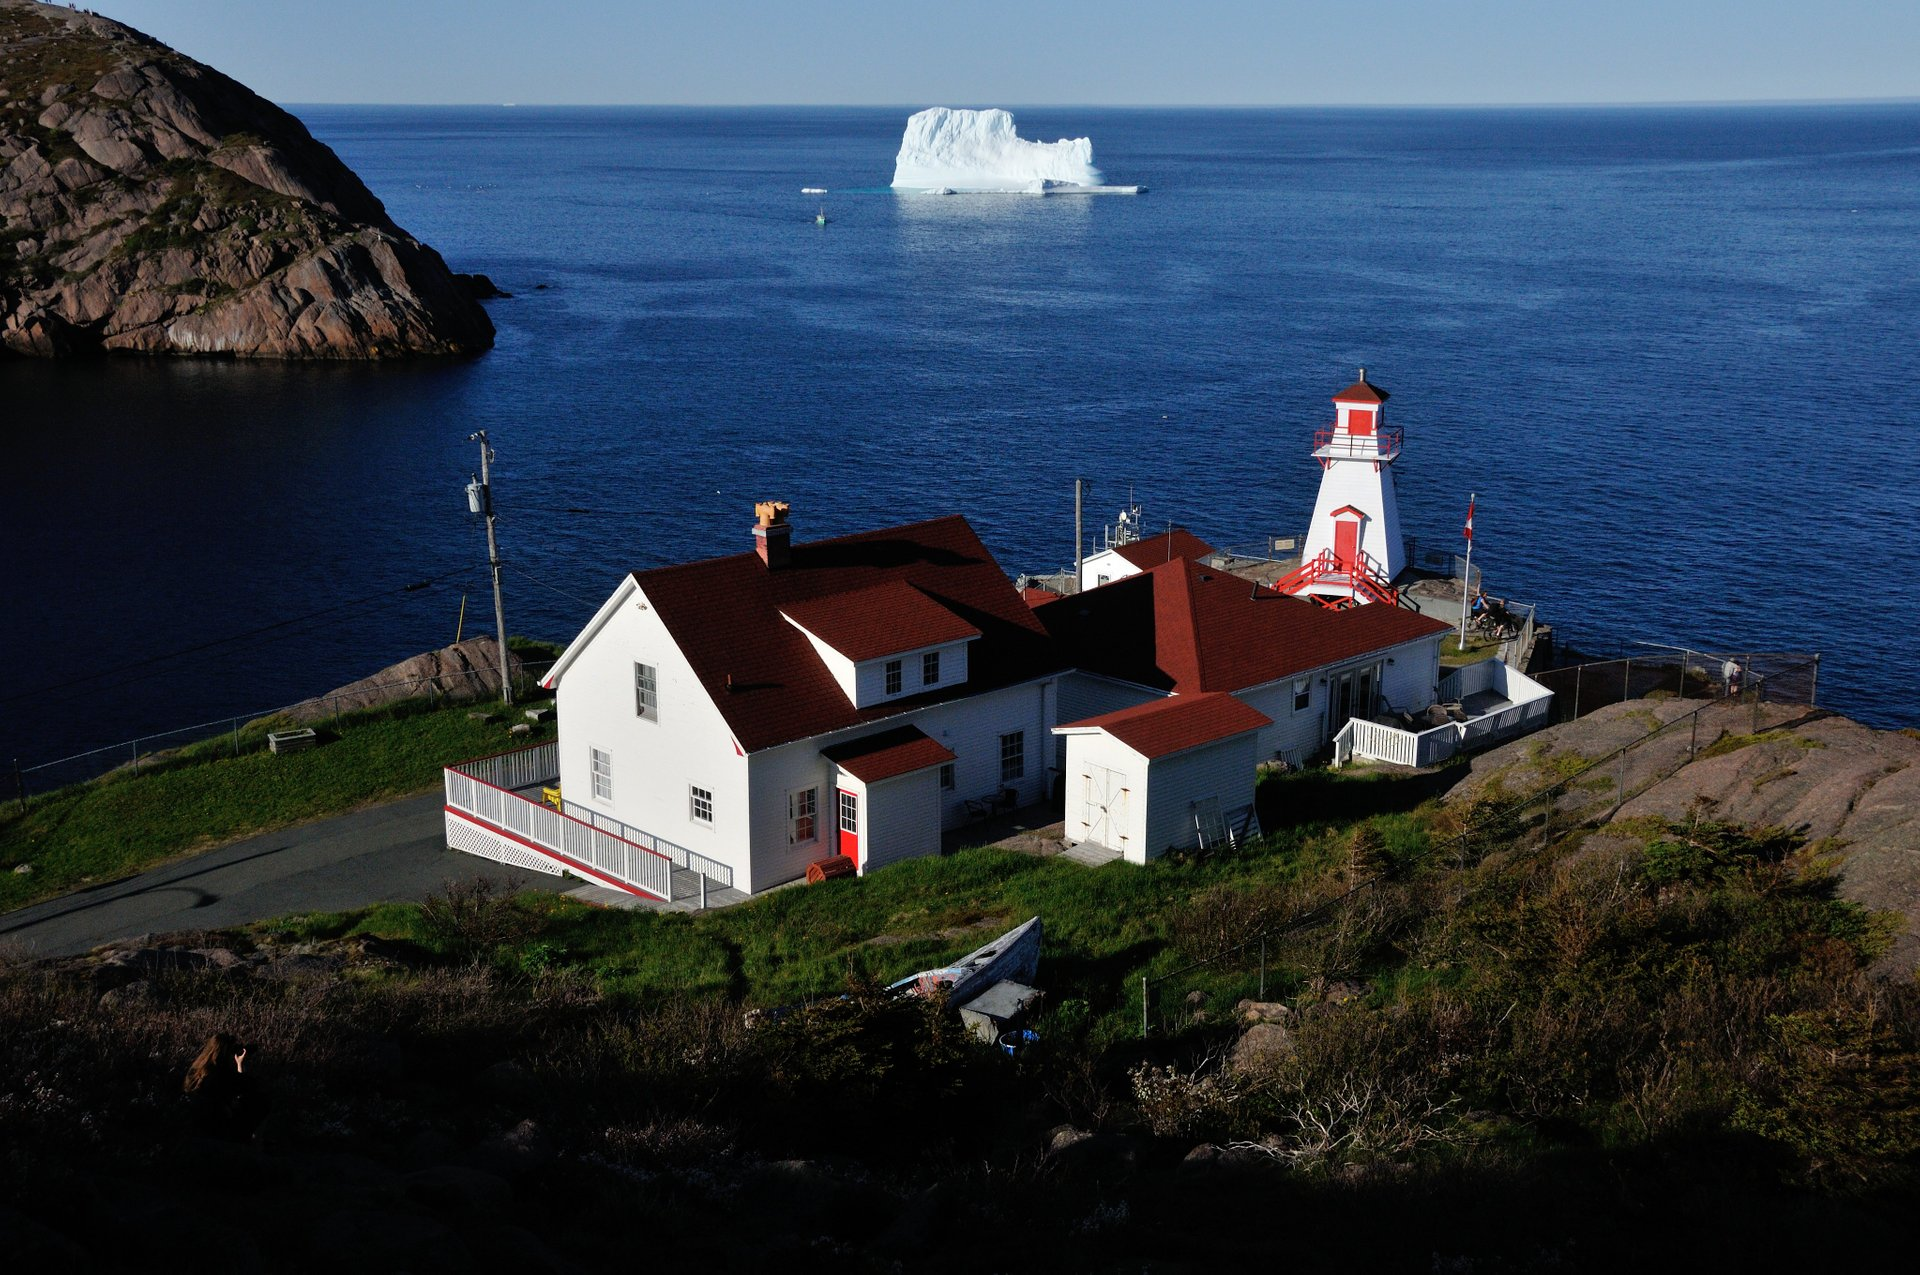 Fort Amherst Lighthouse station not far from St. John's 2020